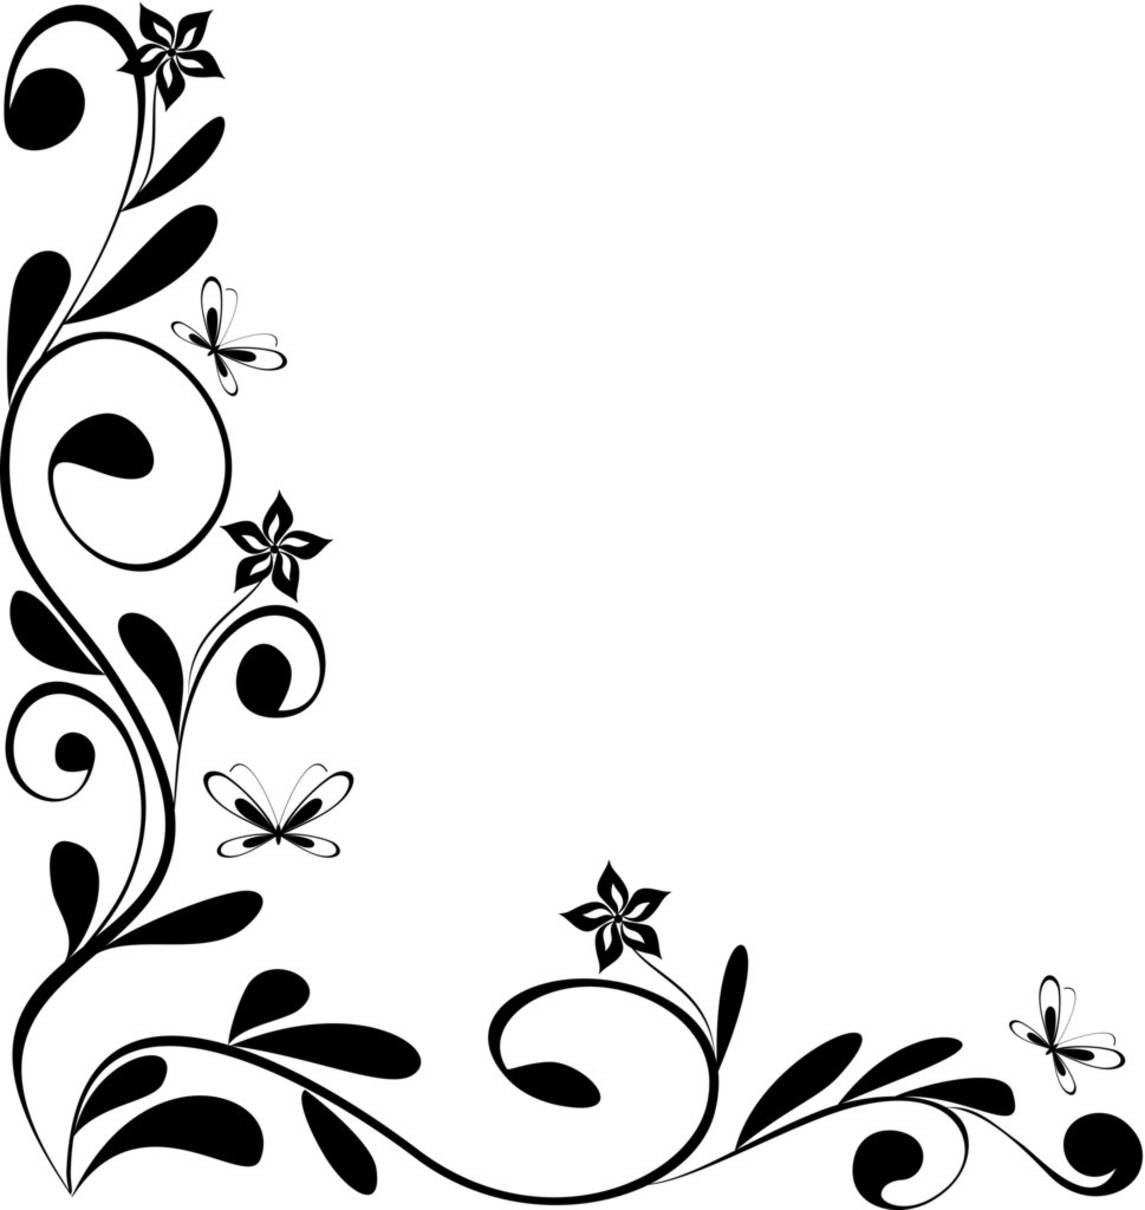 Borders and patterns clip art image free stock 17 Best images about border designs on Pinterest | Daisy flowers ... image free stock